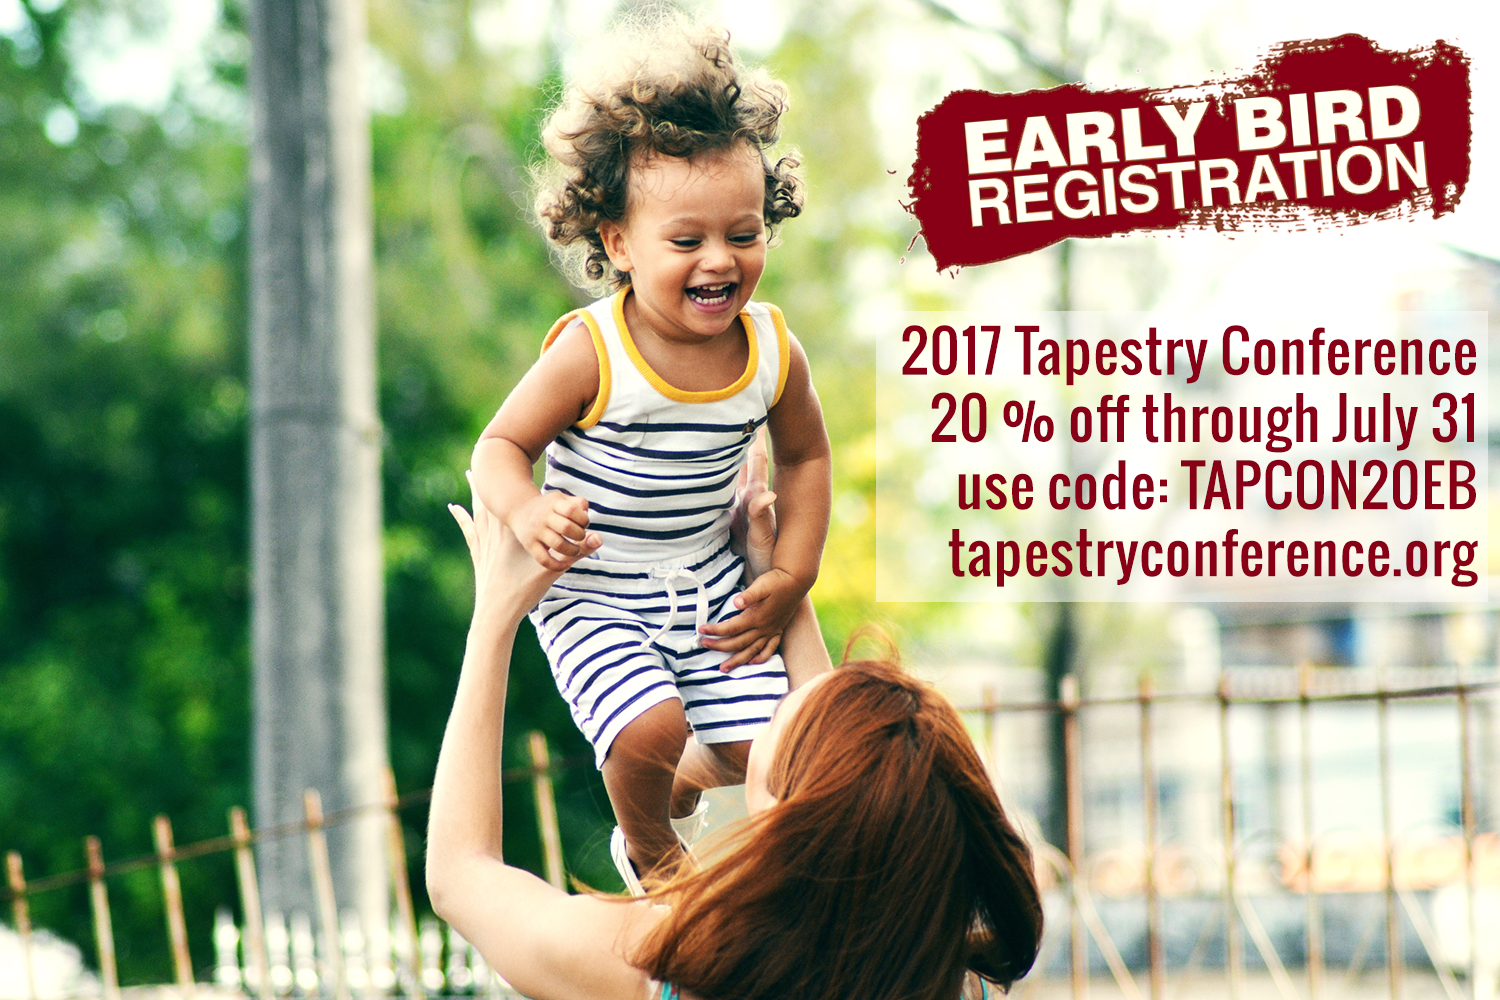 2017 Tapestry Conference